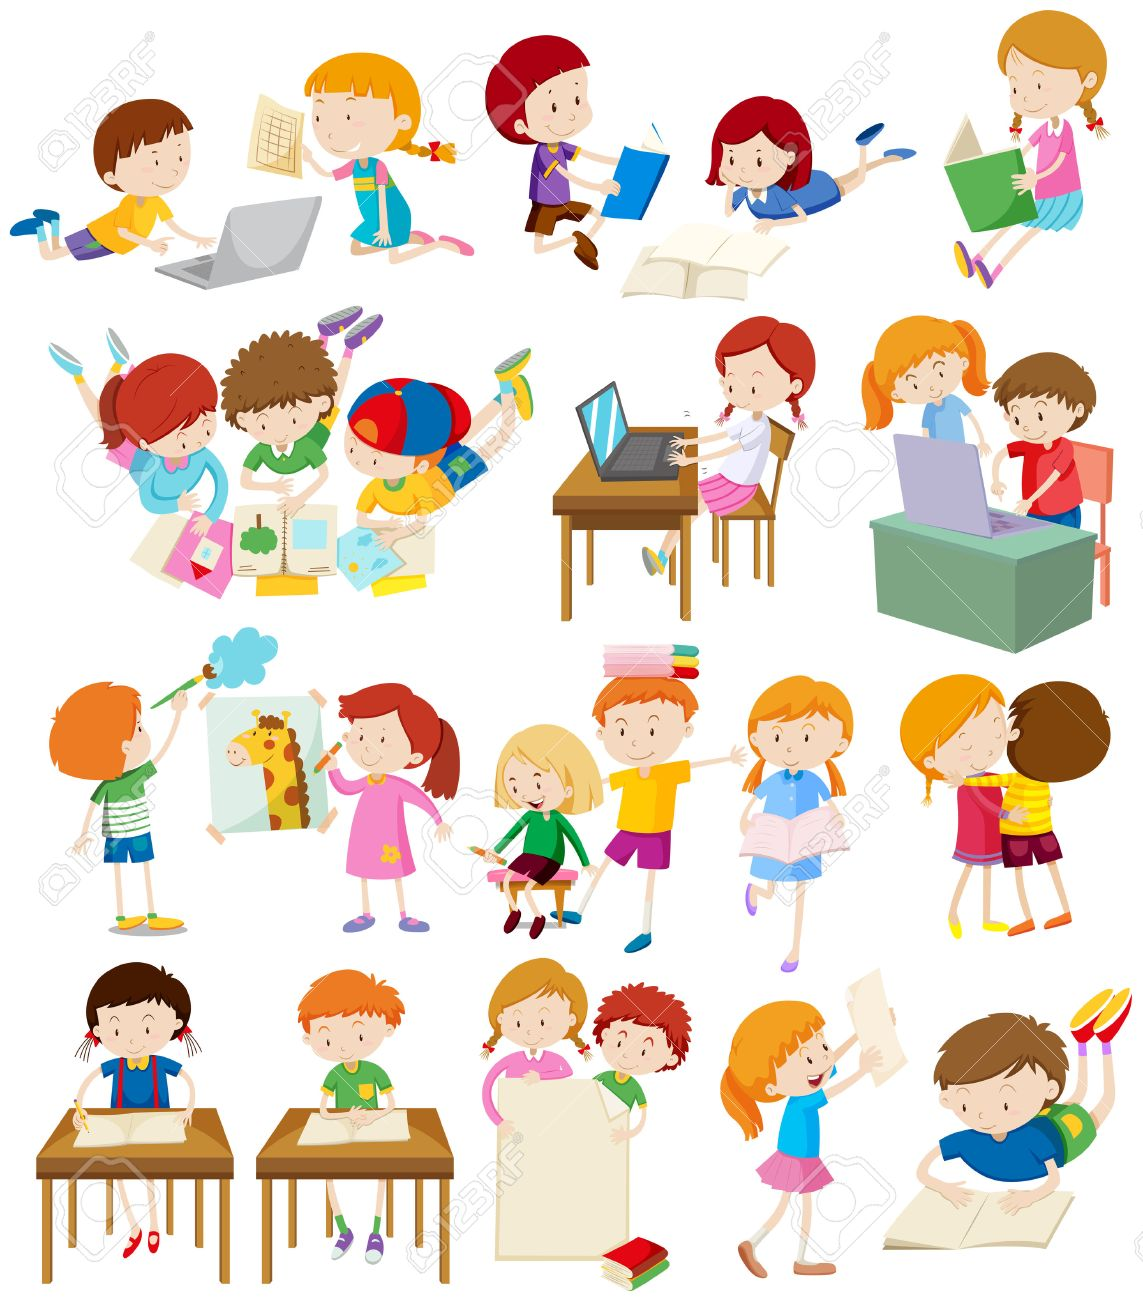 children doing activities at school illustration royalty free